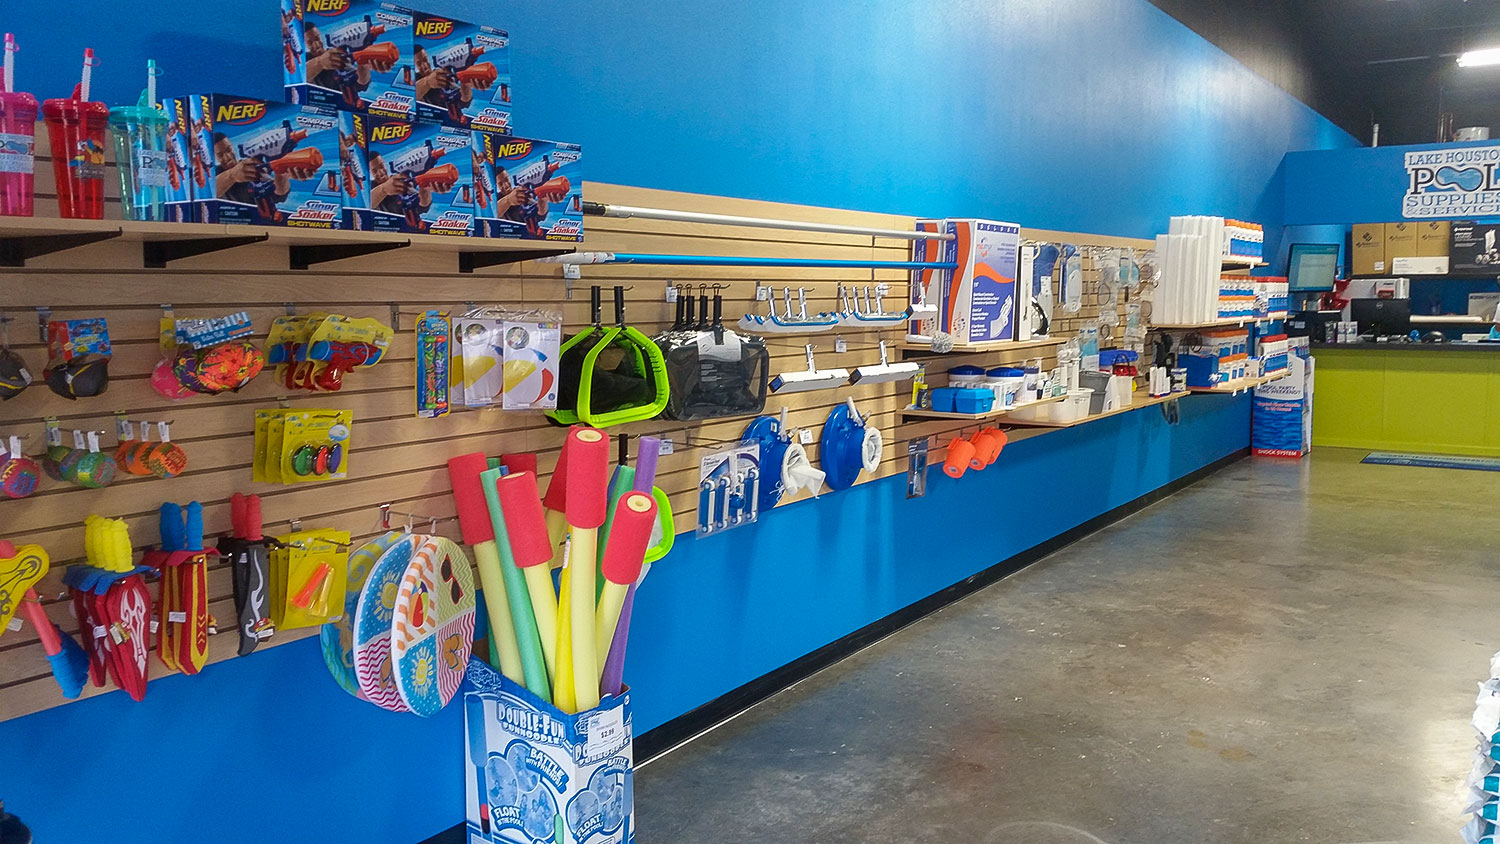 Lake houston pool supply celebrates their grand opening in for Pool supplies